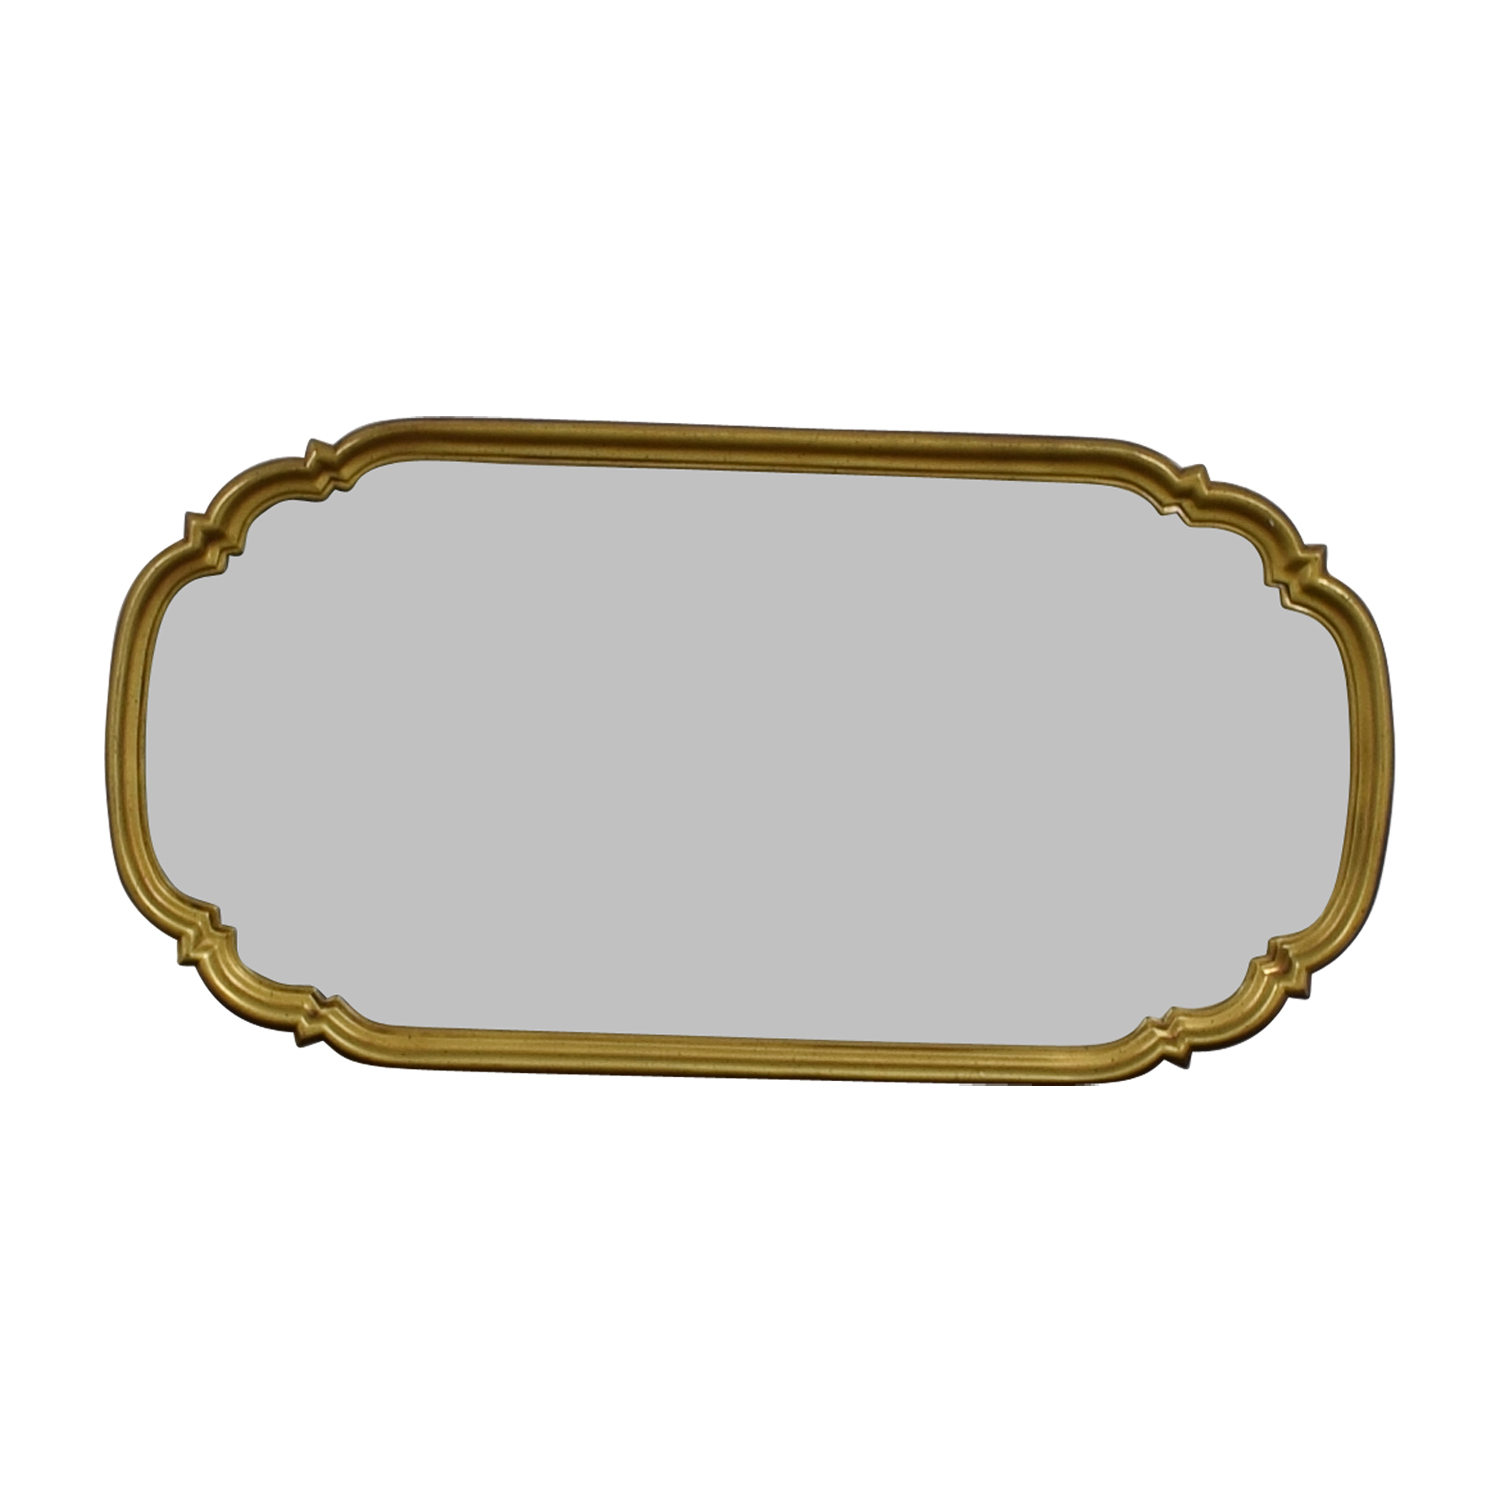 buy  Oval Ornate Gold Framed Mirror online